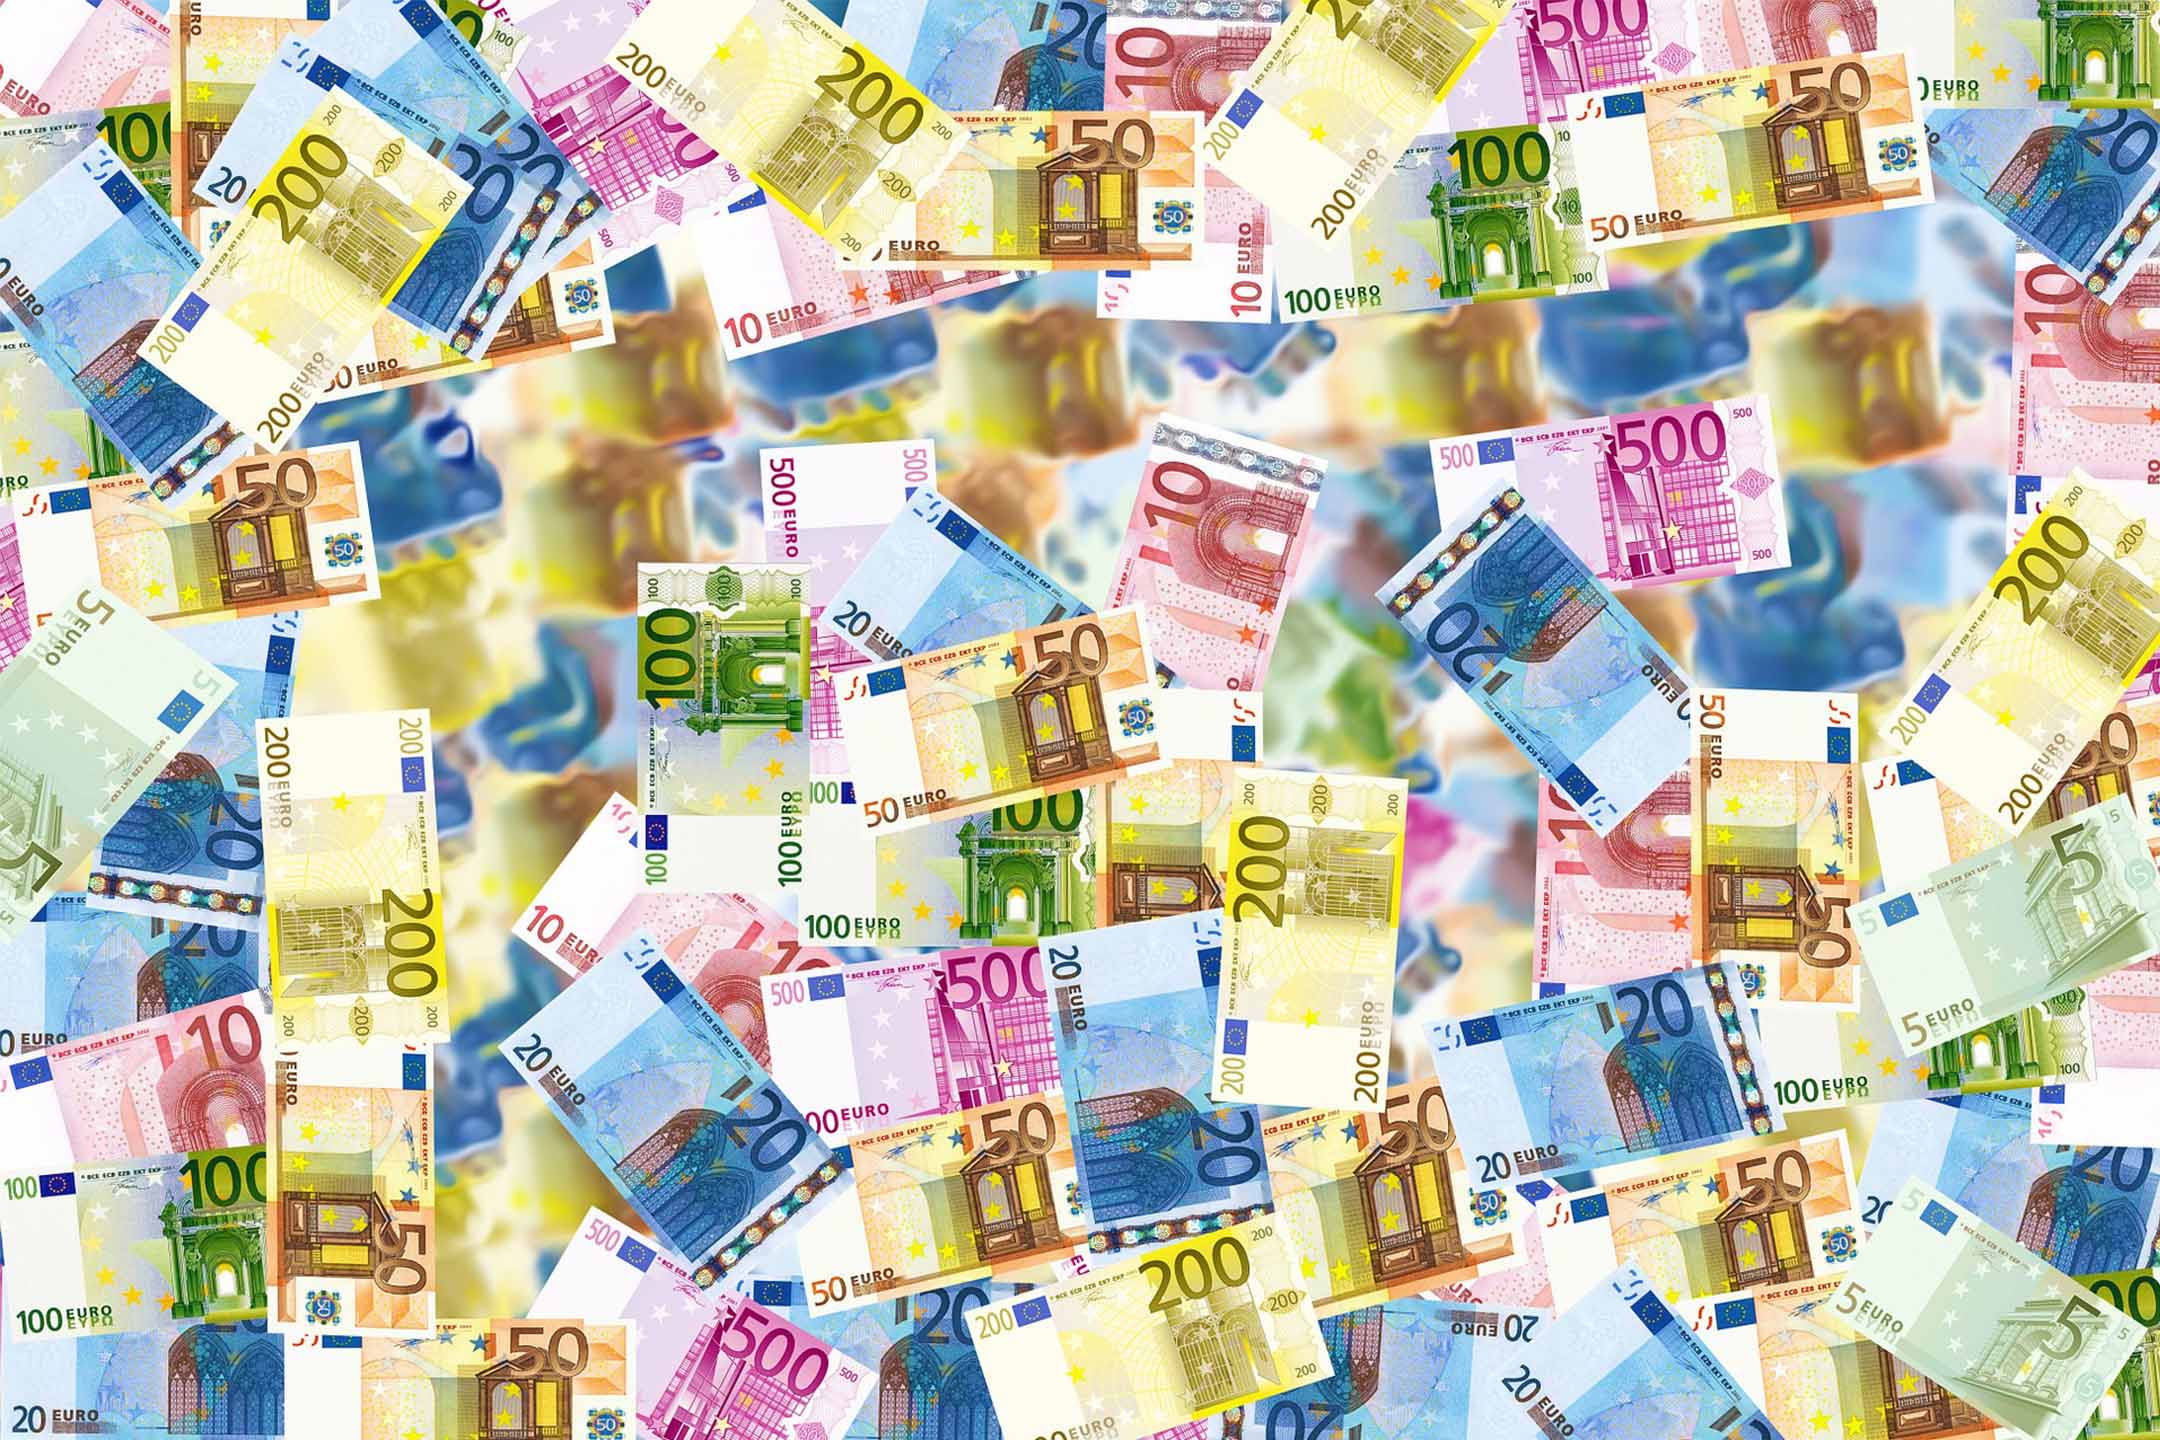 Handling Money While Traveling Abroad